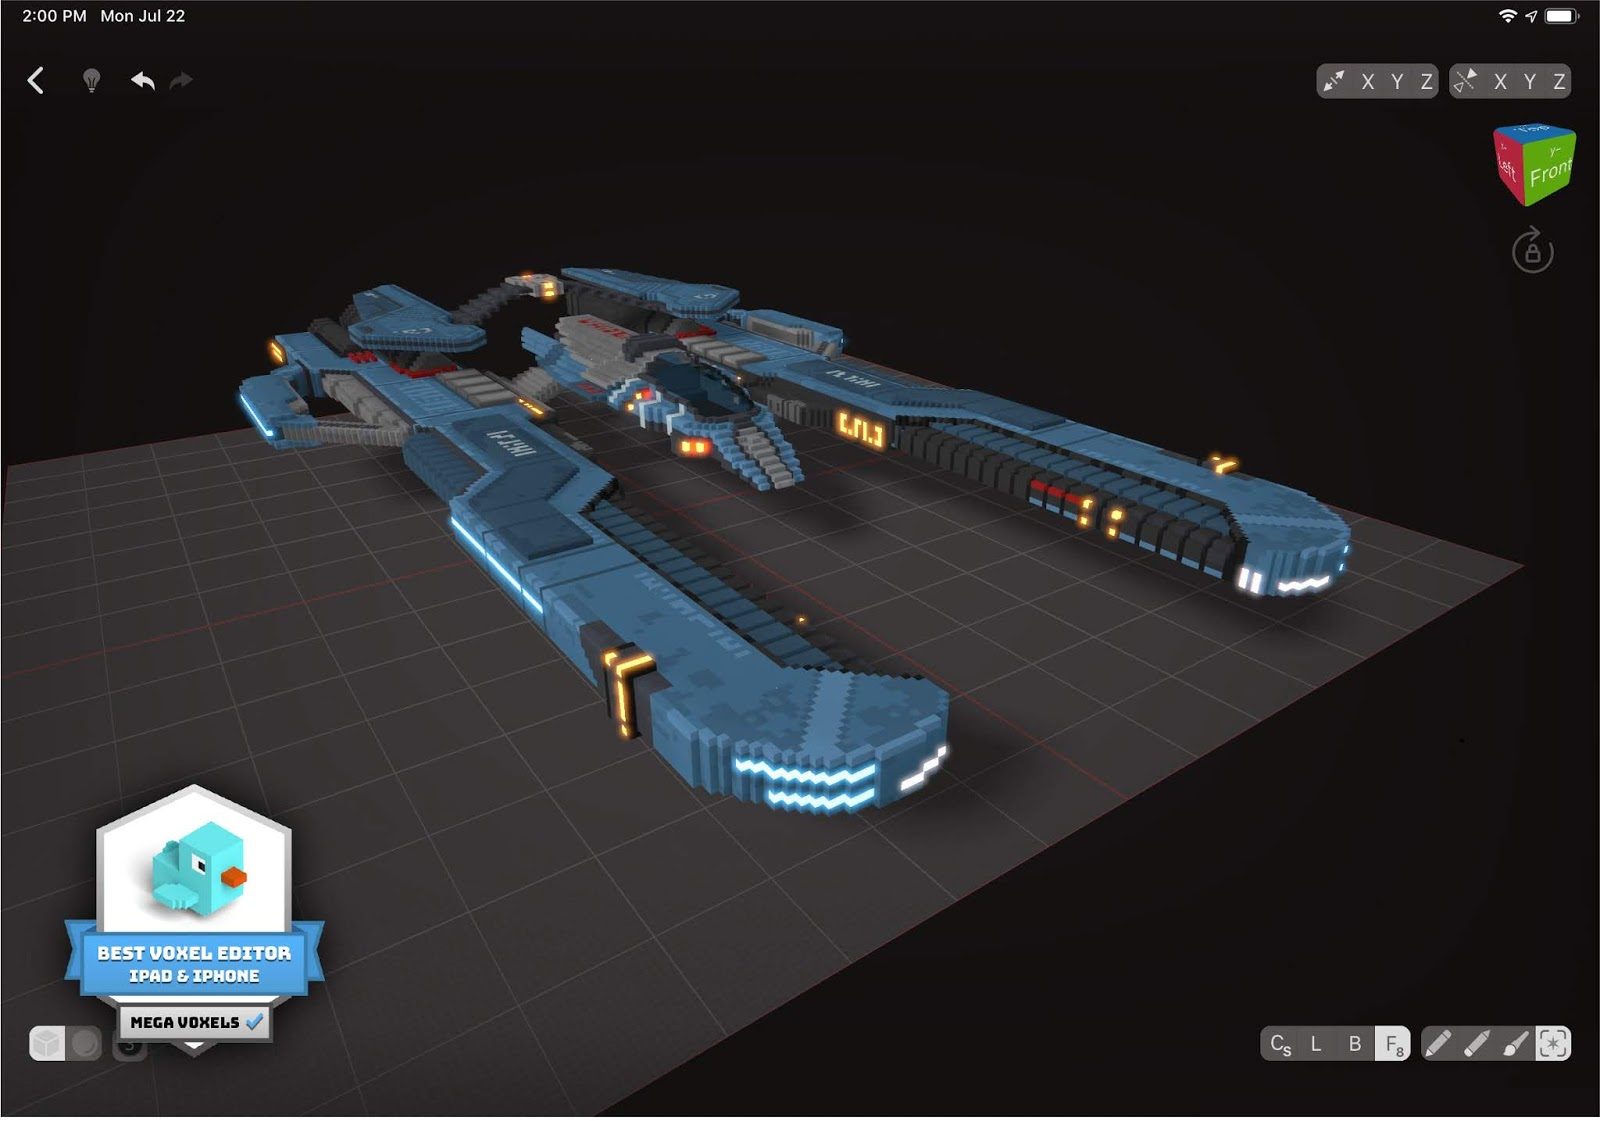 Voxel Max Voxel Editor Software